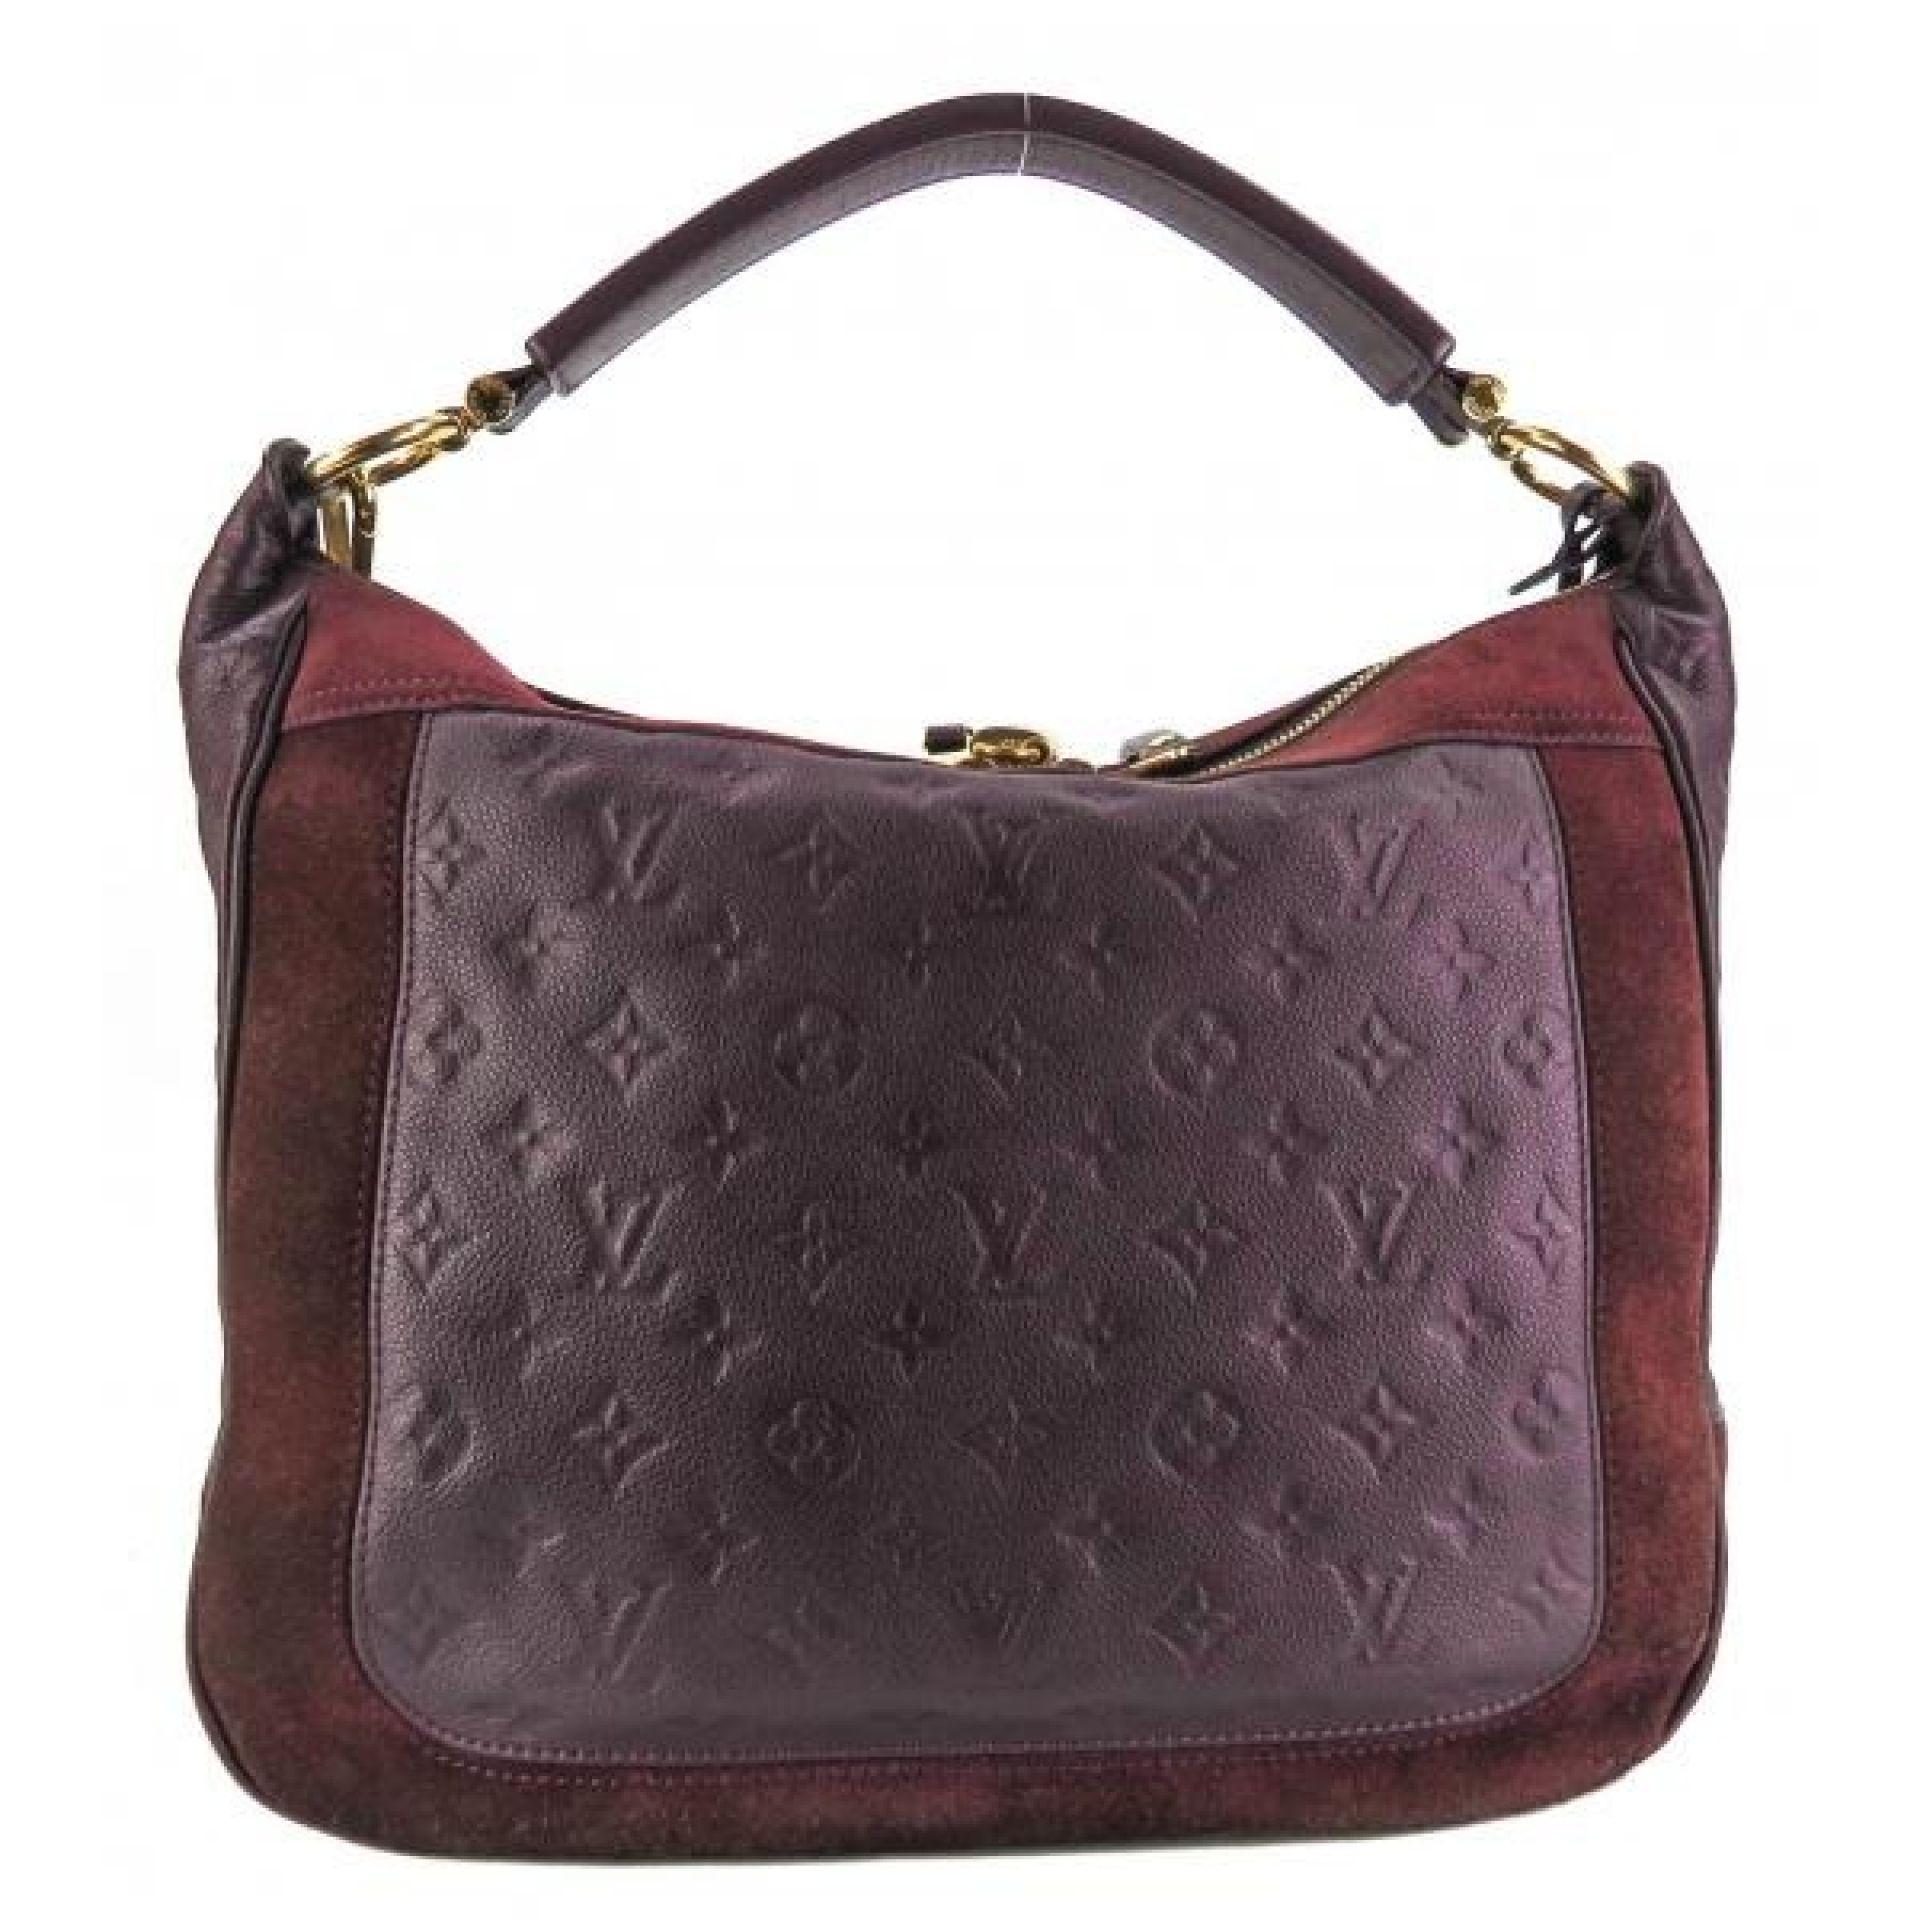 Louis Vuitton Purple Monogram Empreinte Leather Audacieuse MM Hobo Bag